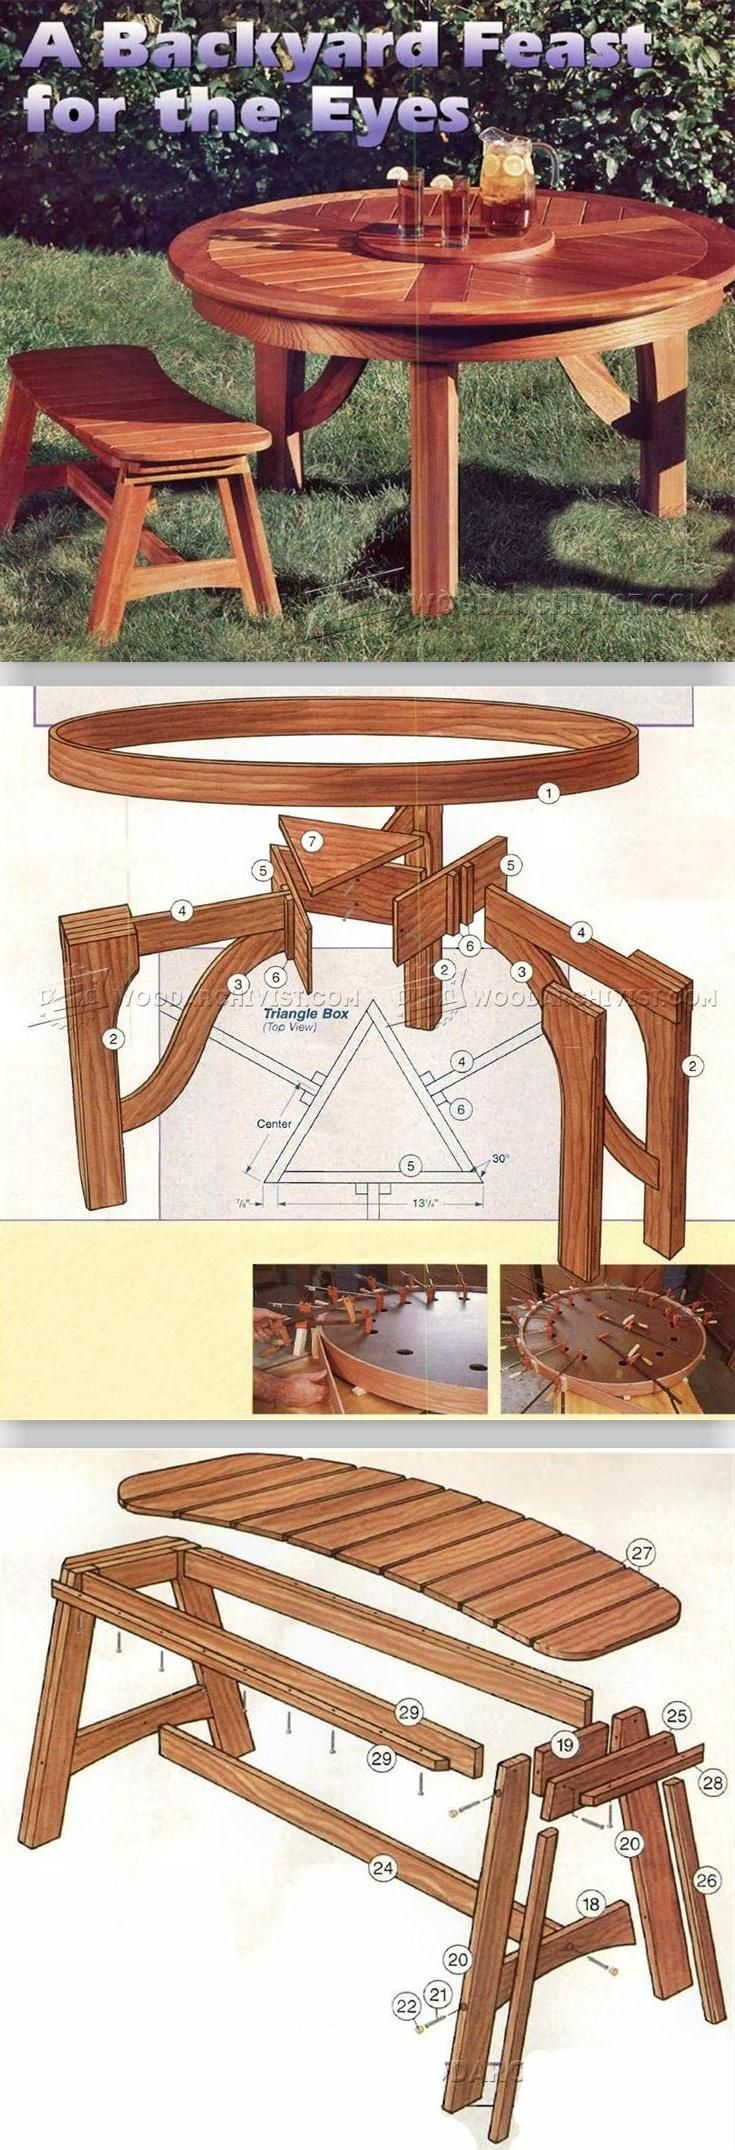 Round Picnic Table Plans Outdoor Furniture Plans Woodworking Plans Diy Picnic Table Plans